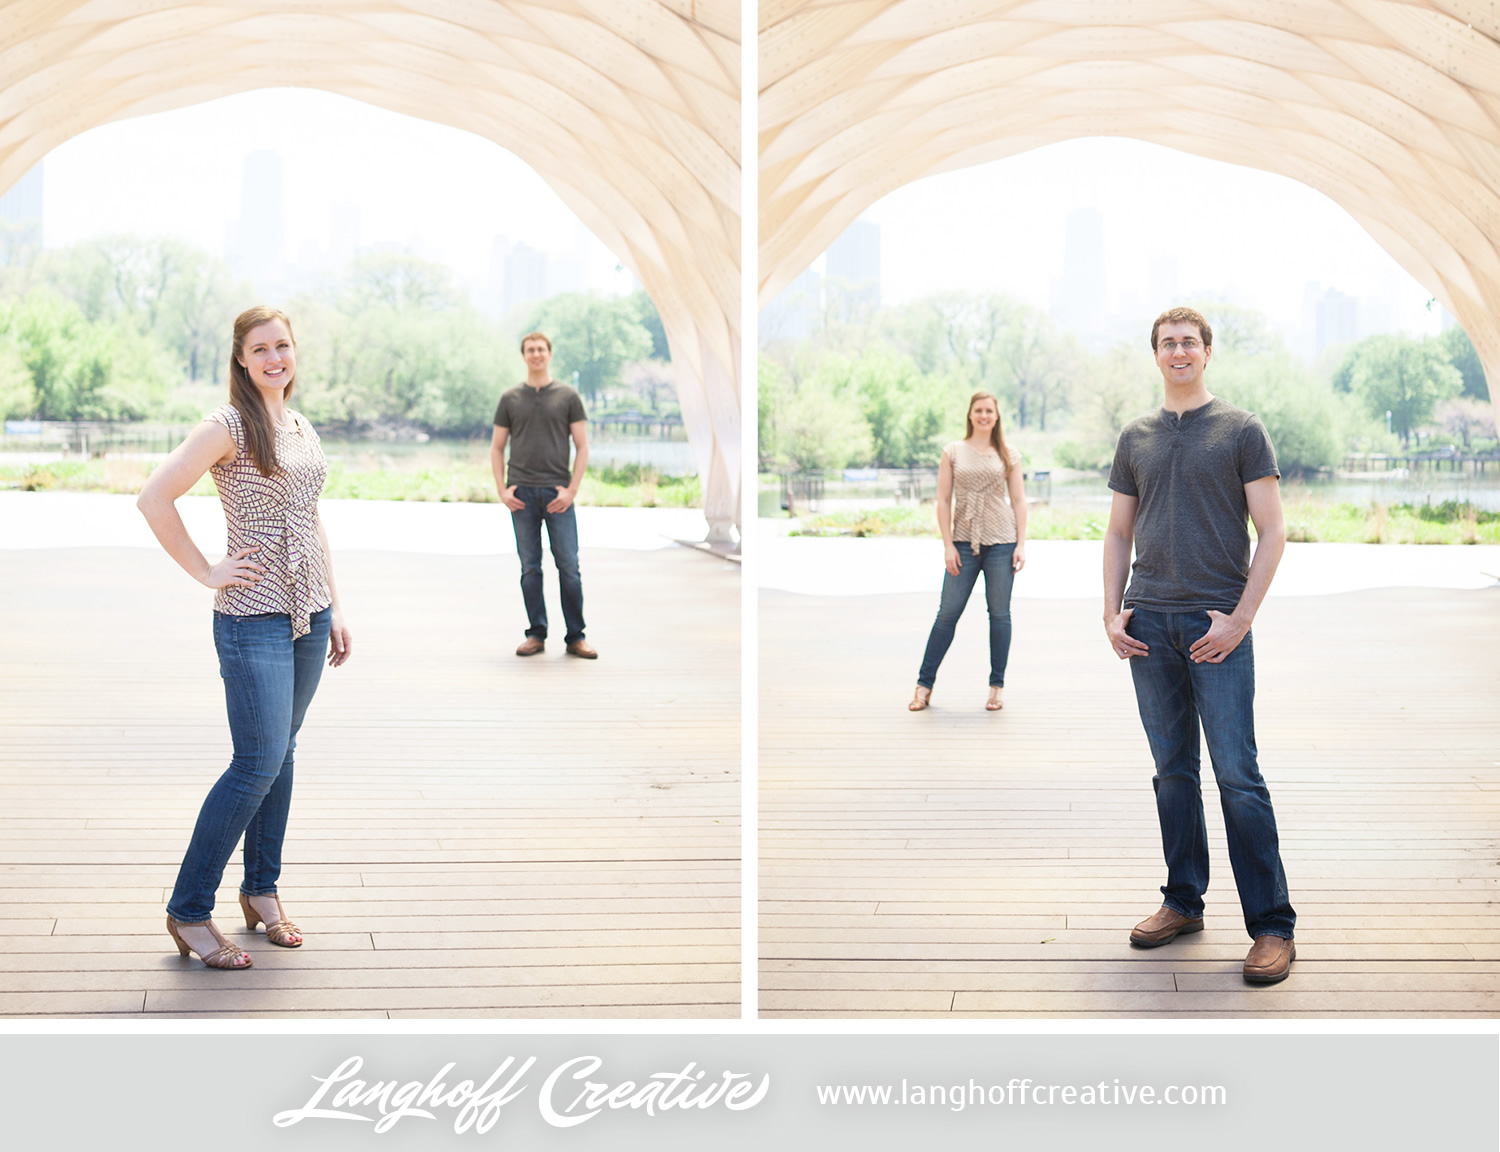 ChicagoEngagement-LincolnParkZoo-Engaged-LanghoffCreative-DestinationWeddingPhotographers-2014-ZacRachel-15-photo.jpg